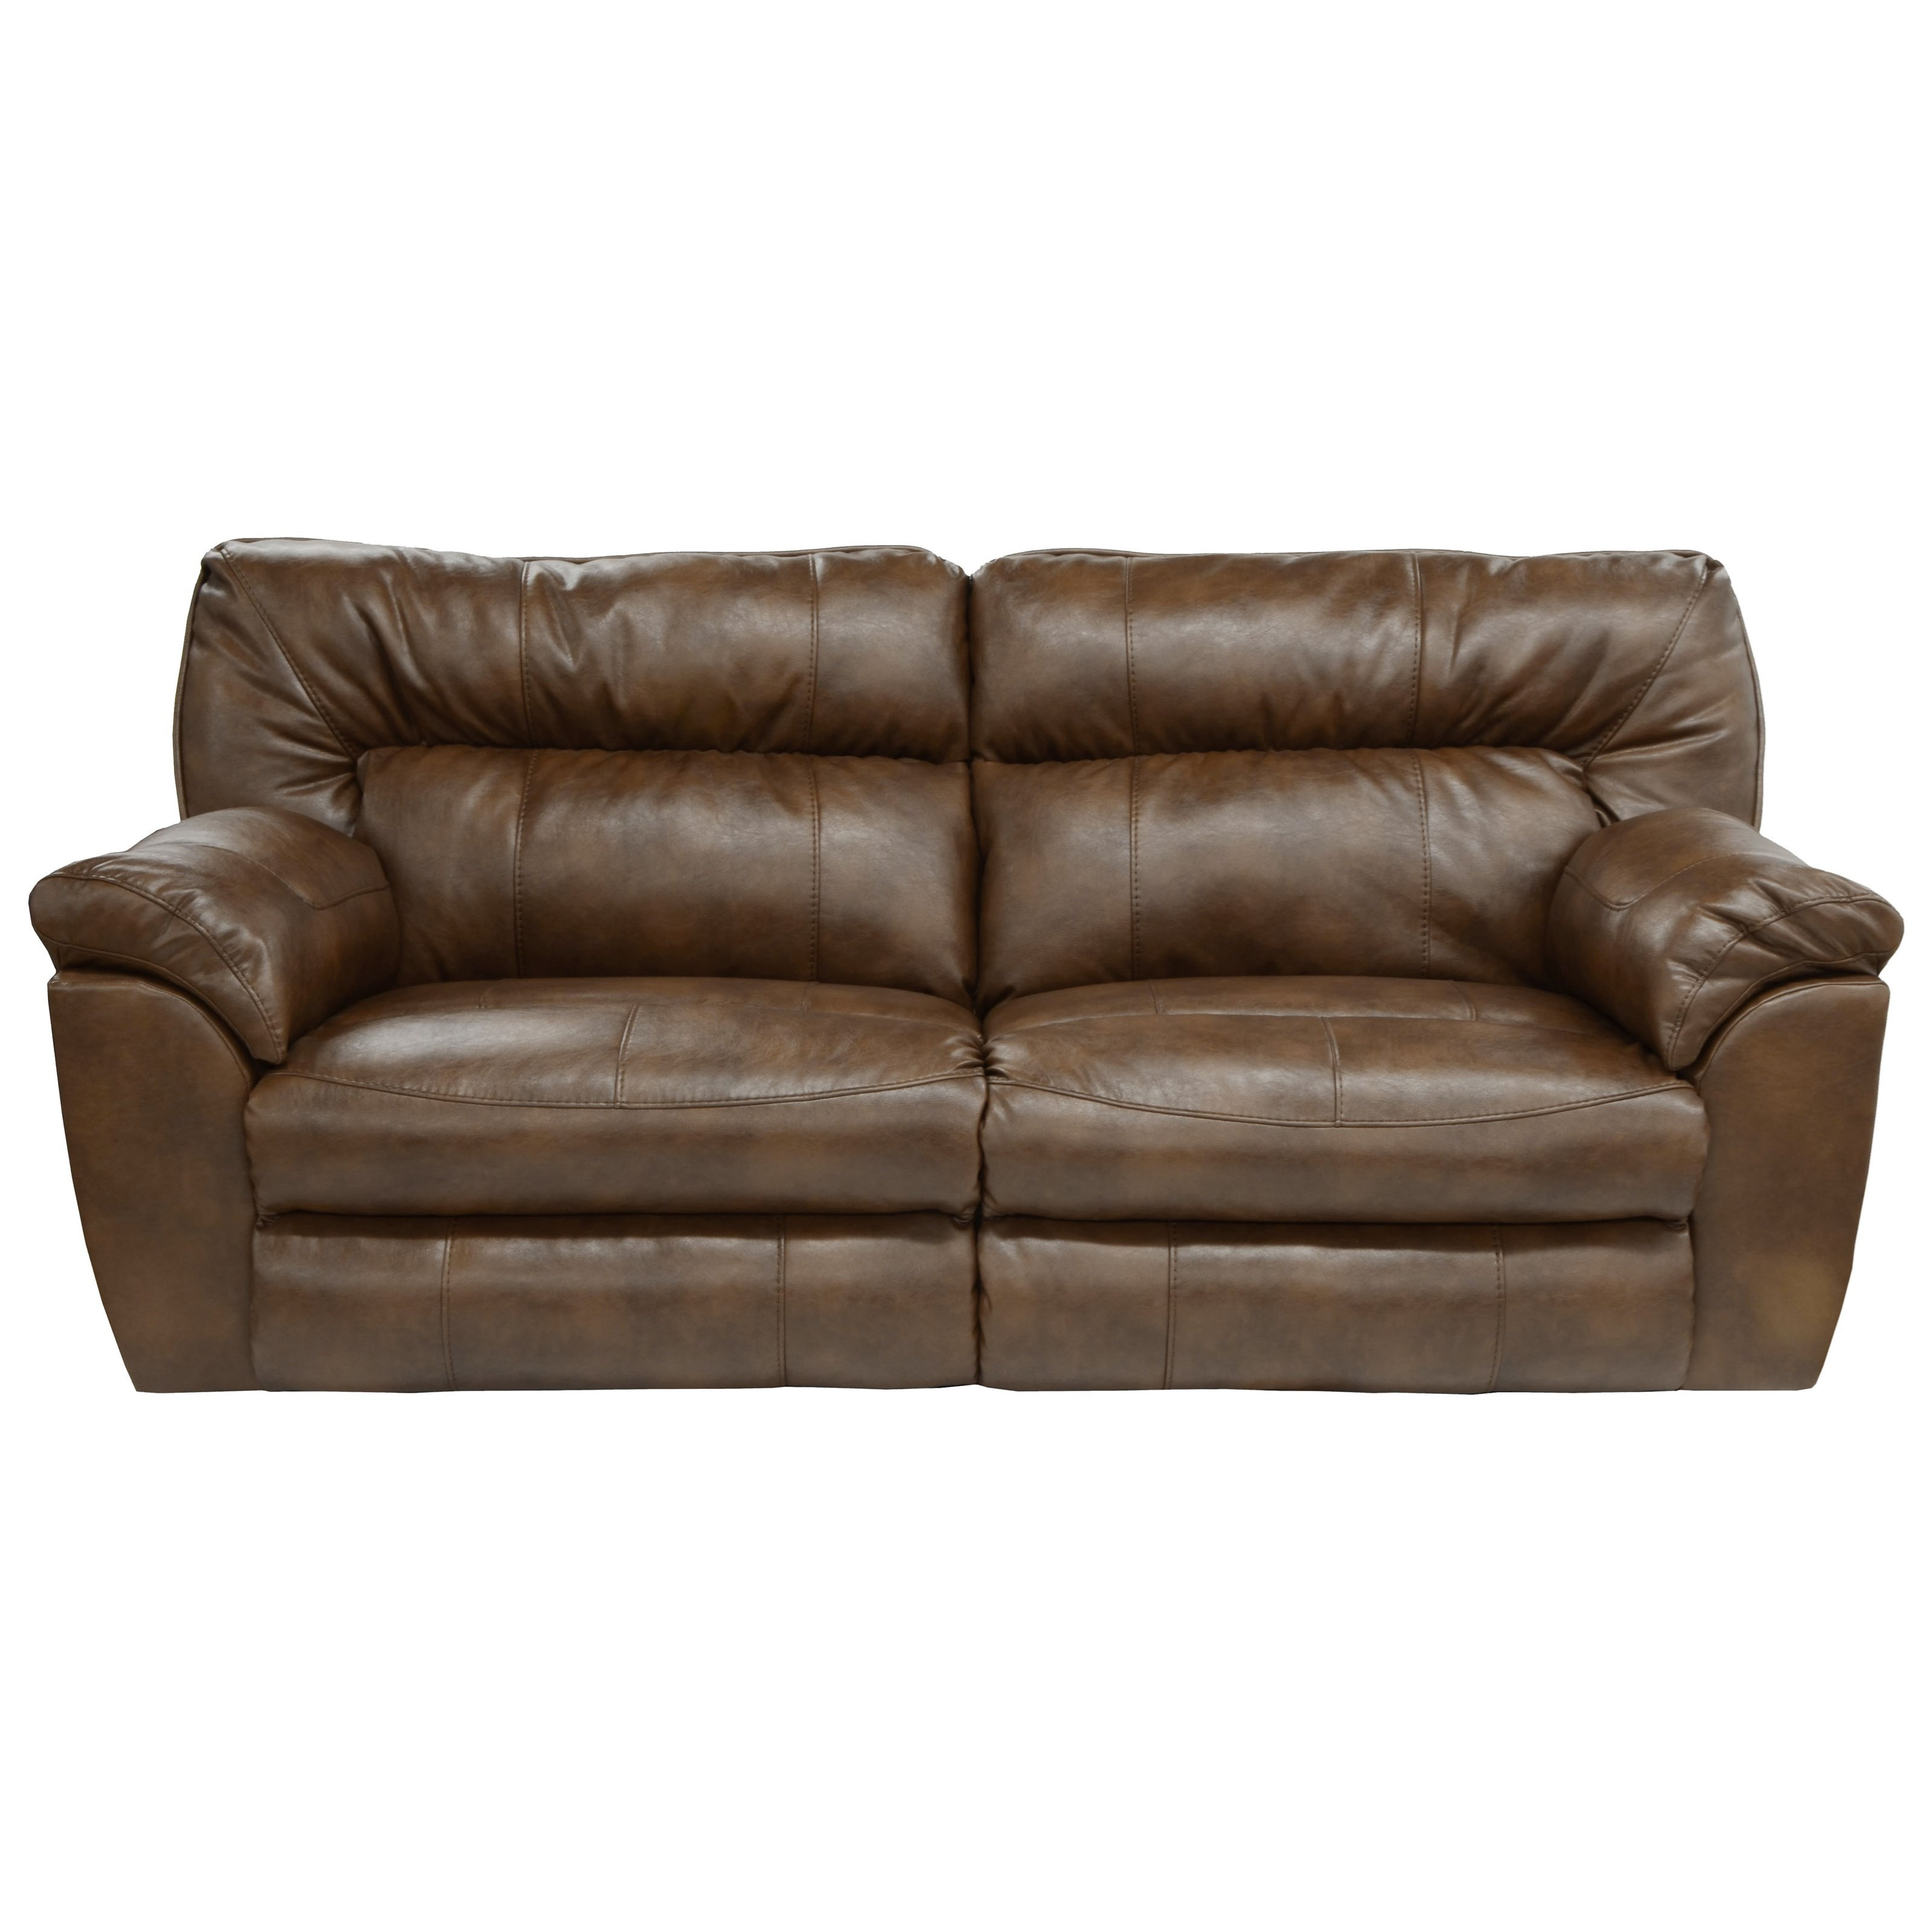 Catnapper nolan 4041 extra wide reclining sofa furniture for Wide couches